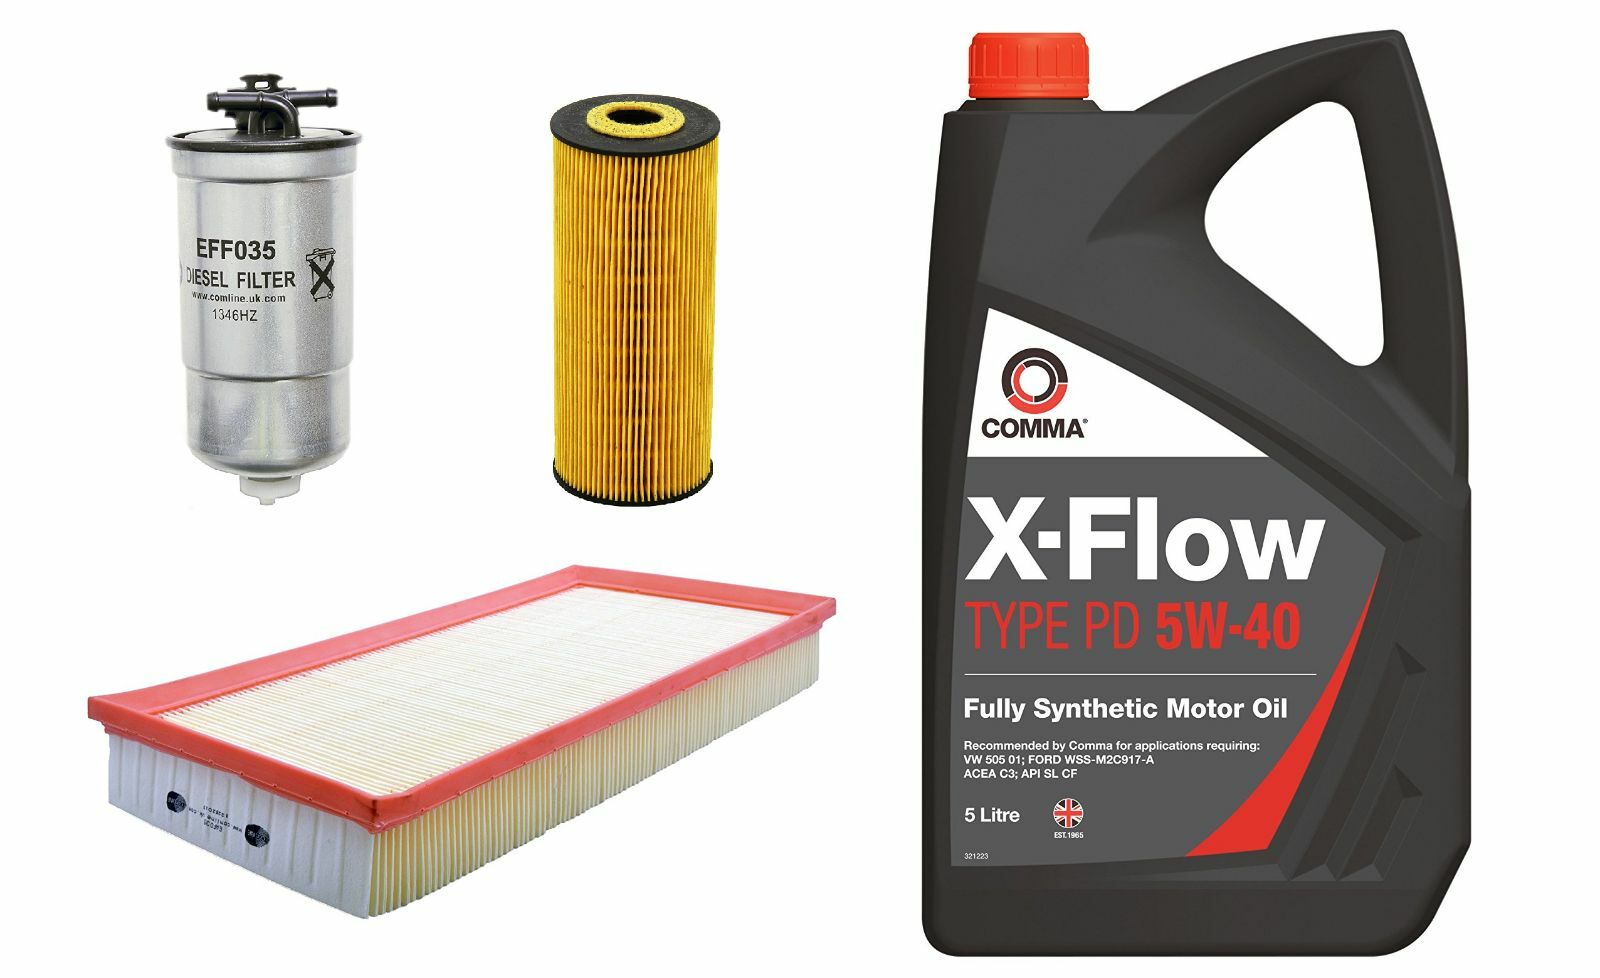 Oil Air Fuel Filter Service Kit Volkswagen Bora 19 Tdi Pd Diesel 01 Mercedes Benz On M2 1 Of 1free Shipping